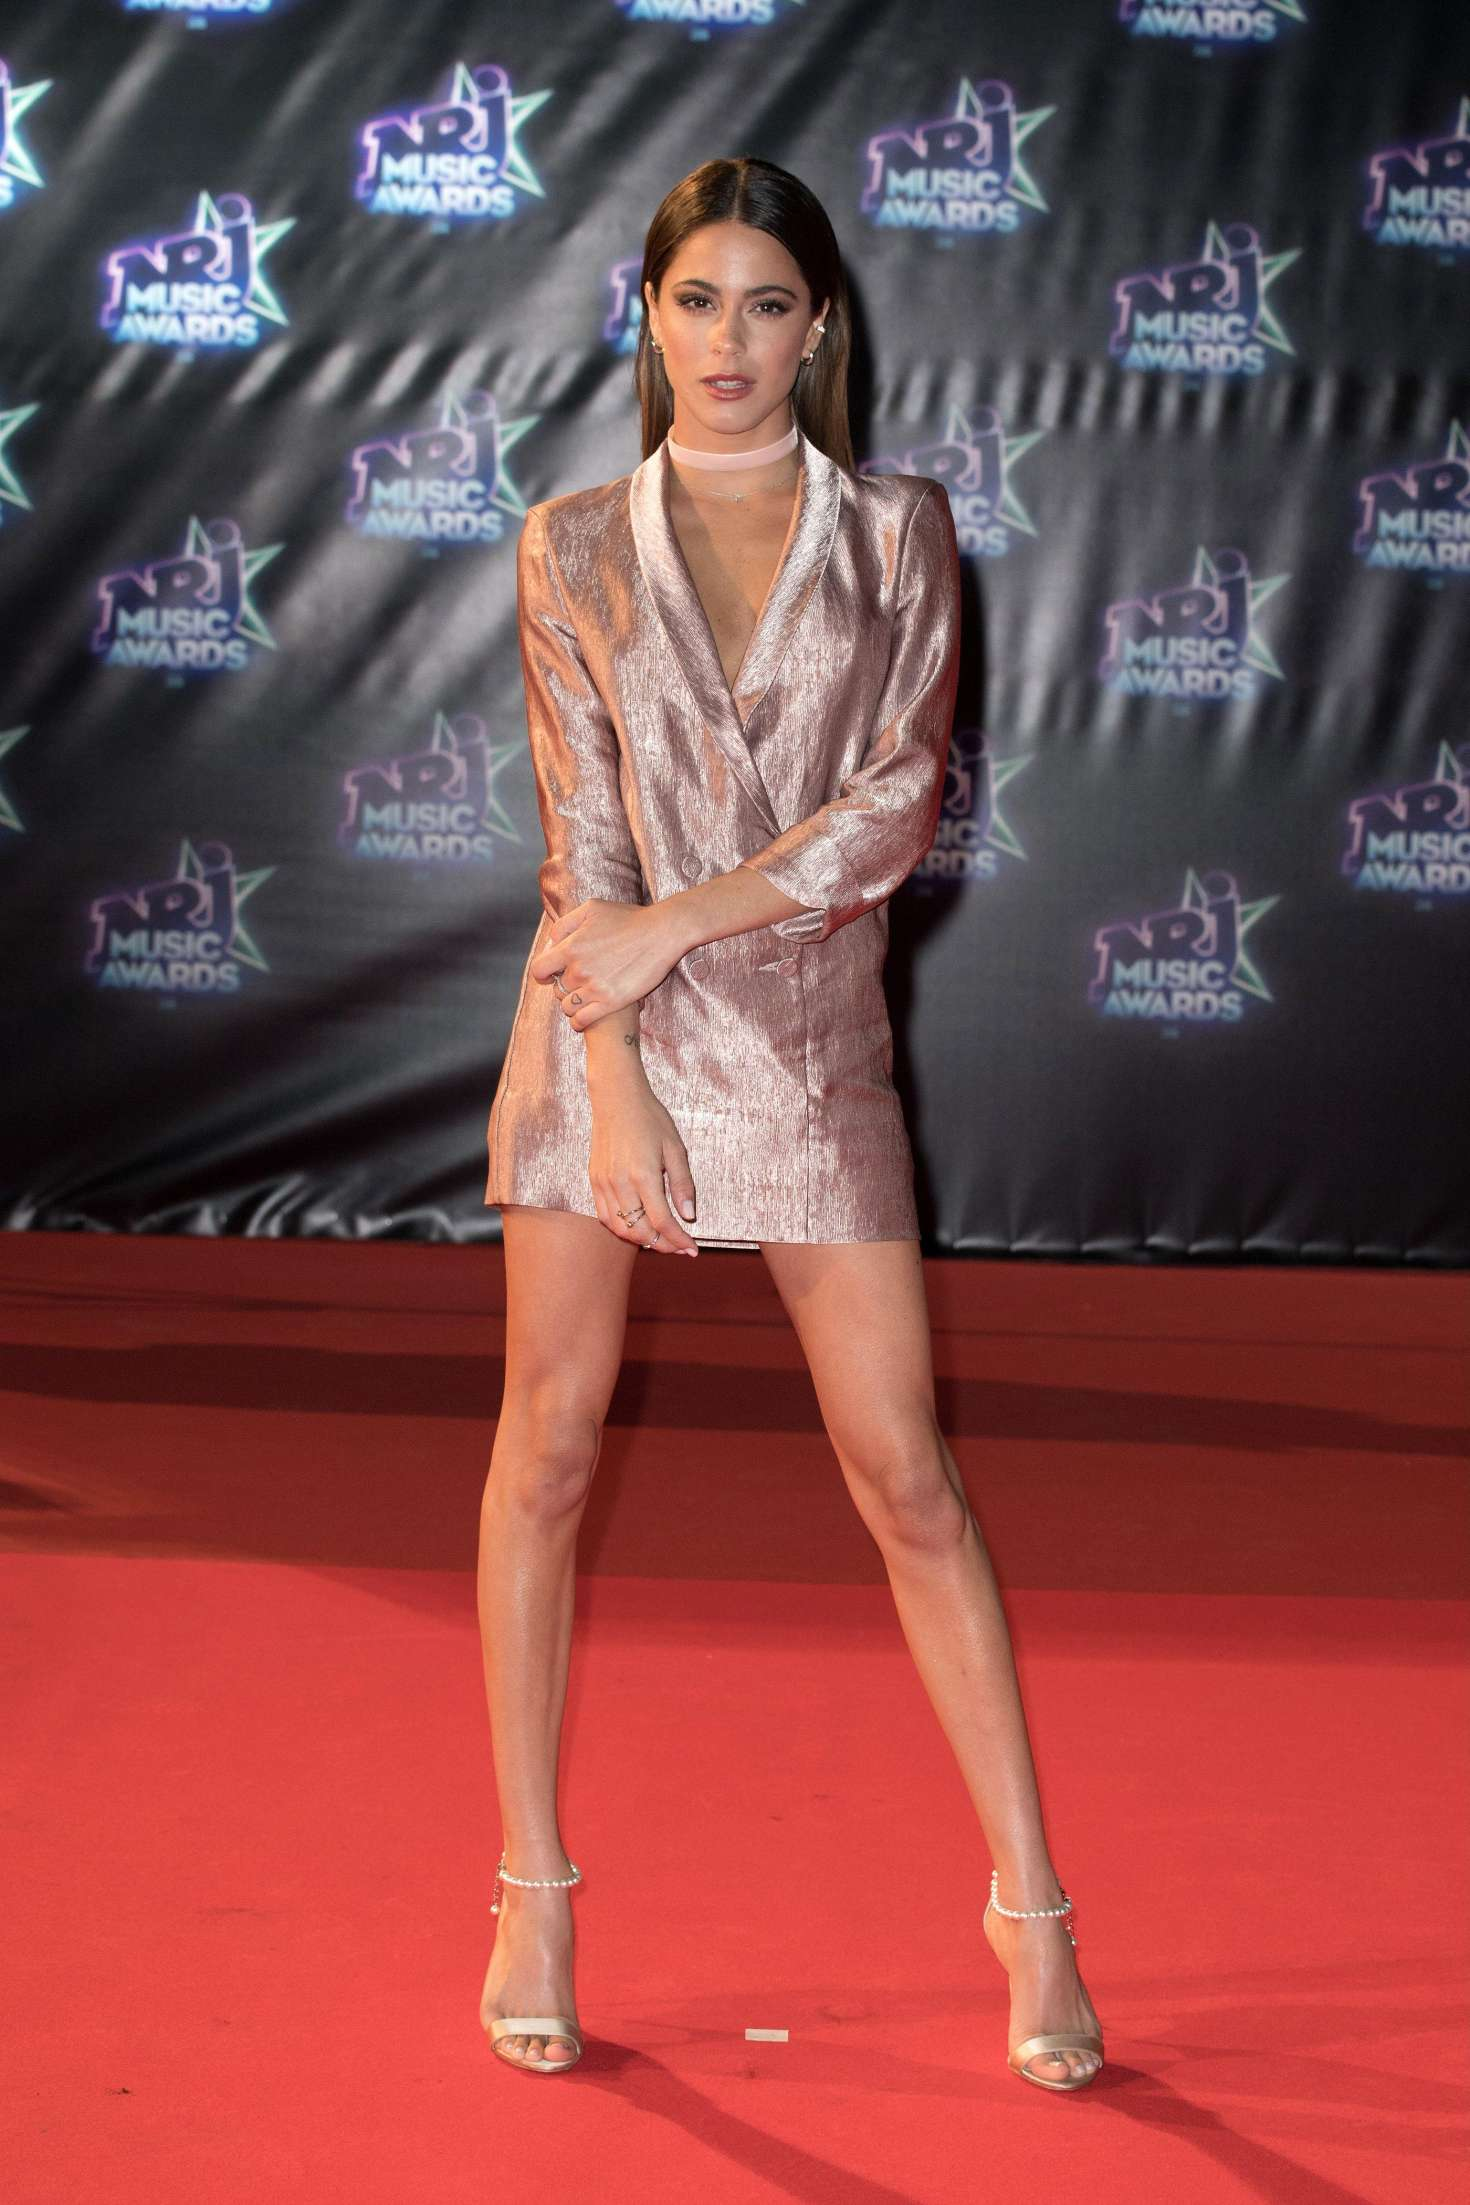 http://www.gotceleb.com/wp-content/uploads/photos/martina-stoessel/nrj-music-awards-2016-in-cannes/Martina-Stoessel:-NRJ-Music-Awards-2016--30.jpg